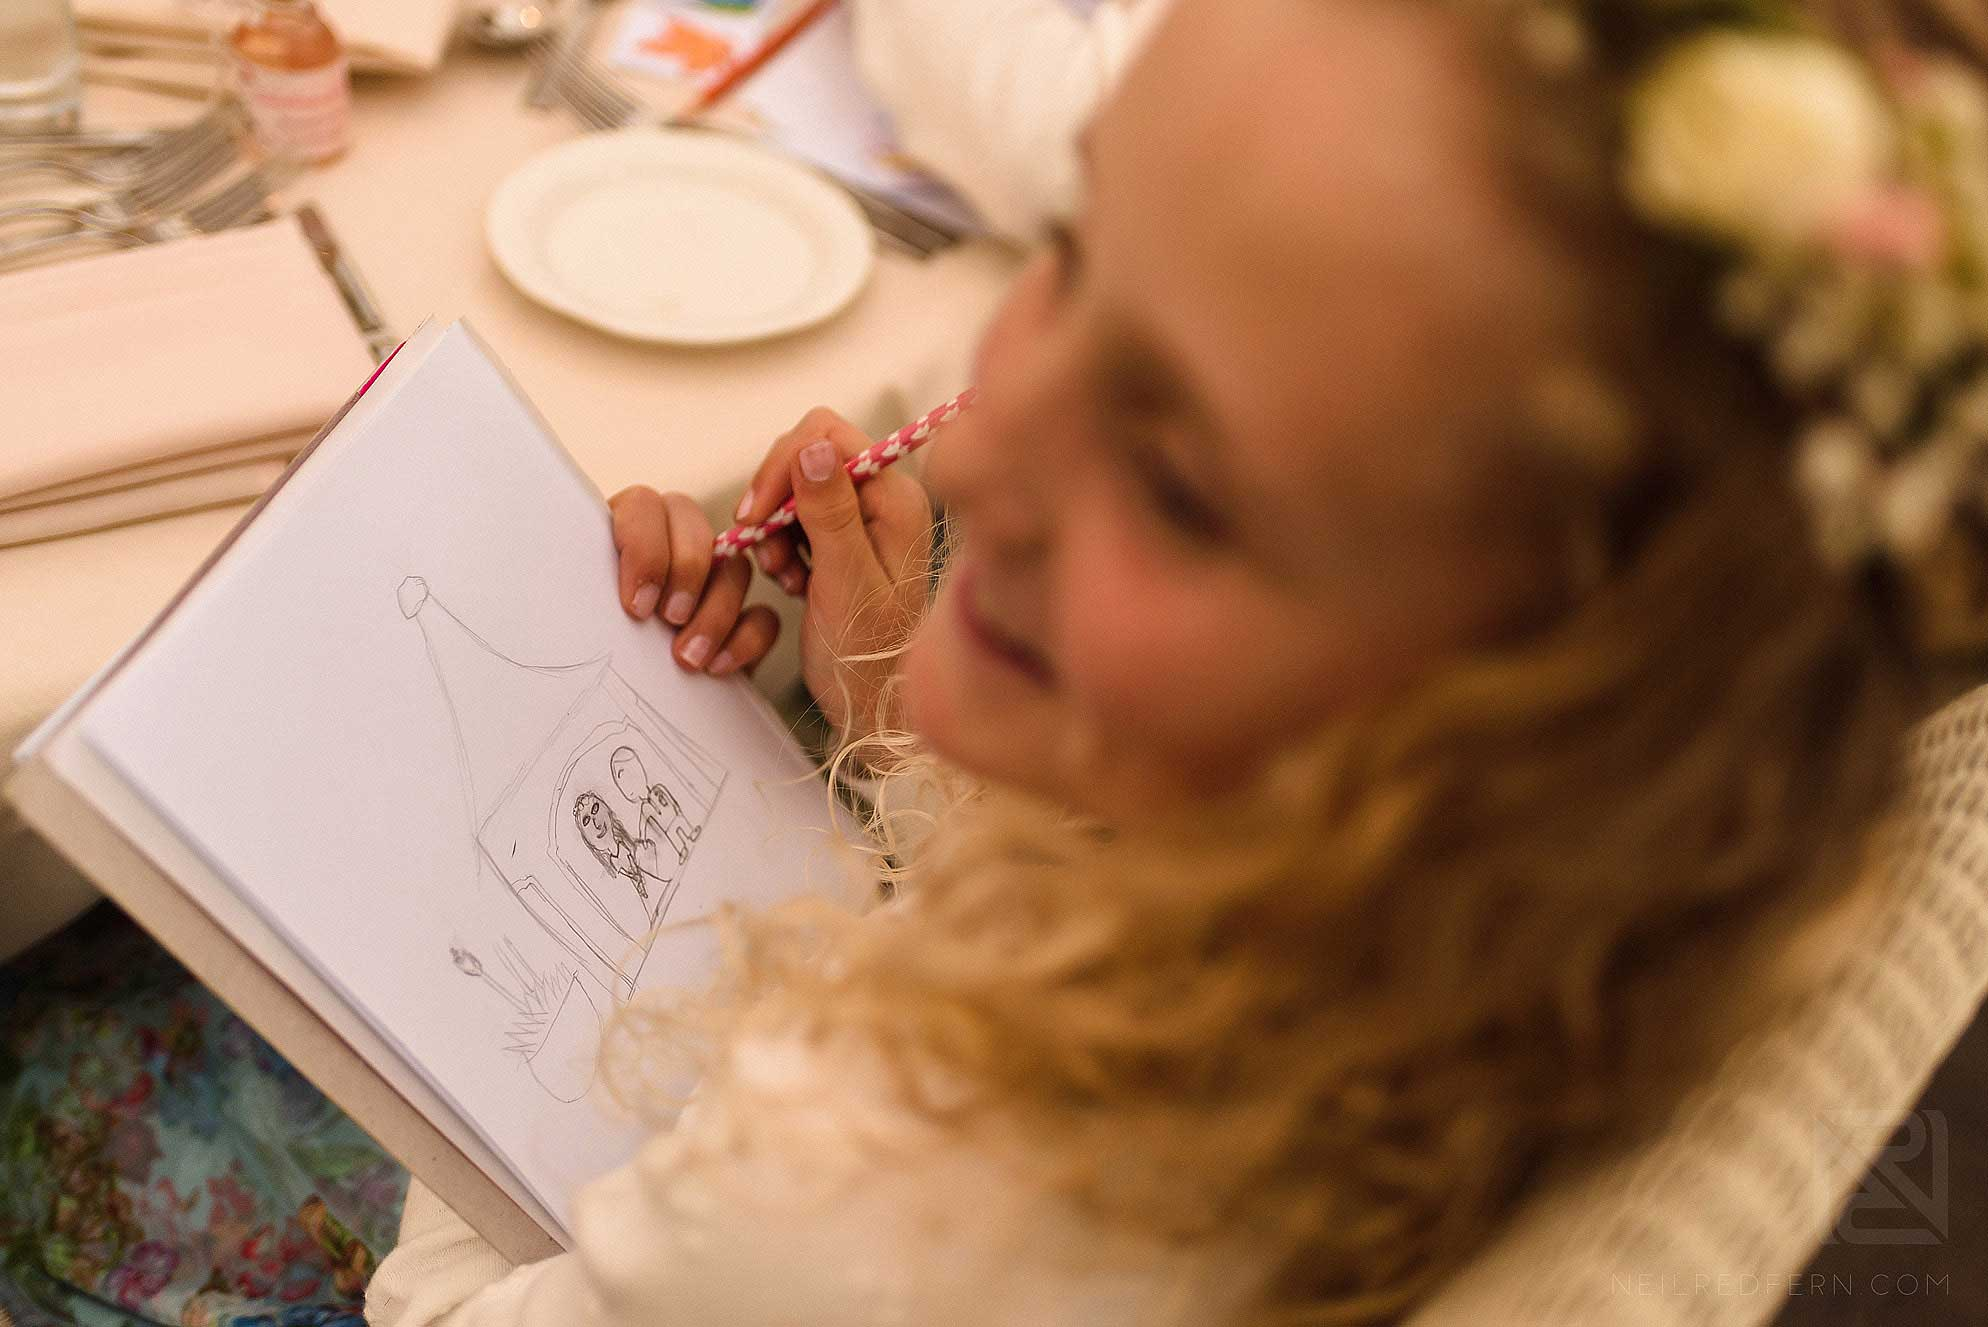 flower girl drawing a picture